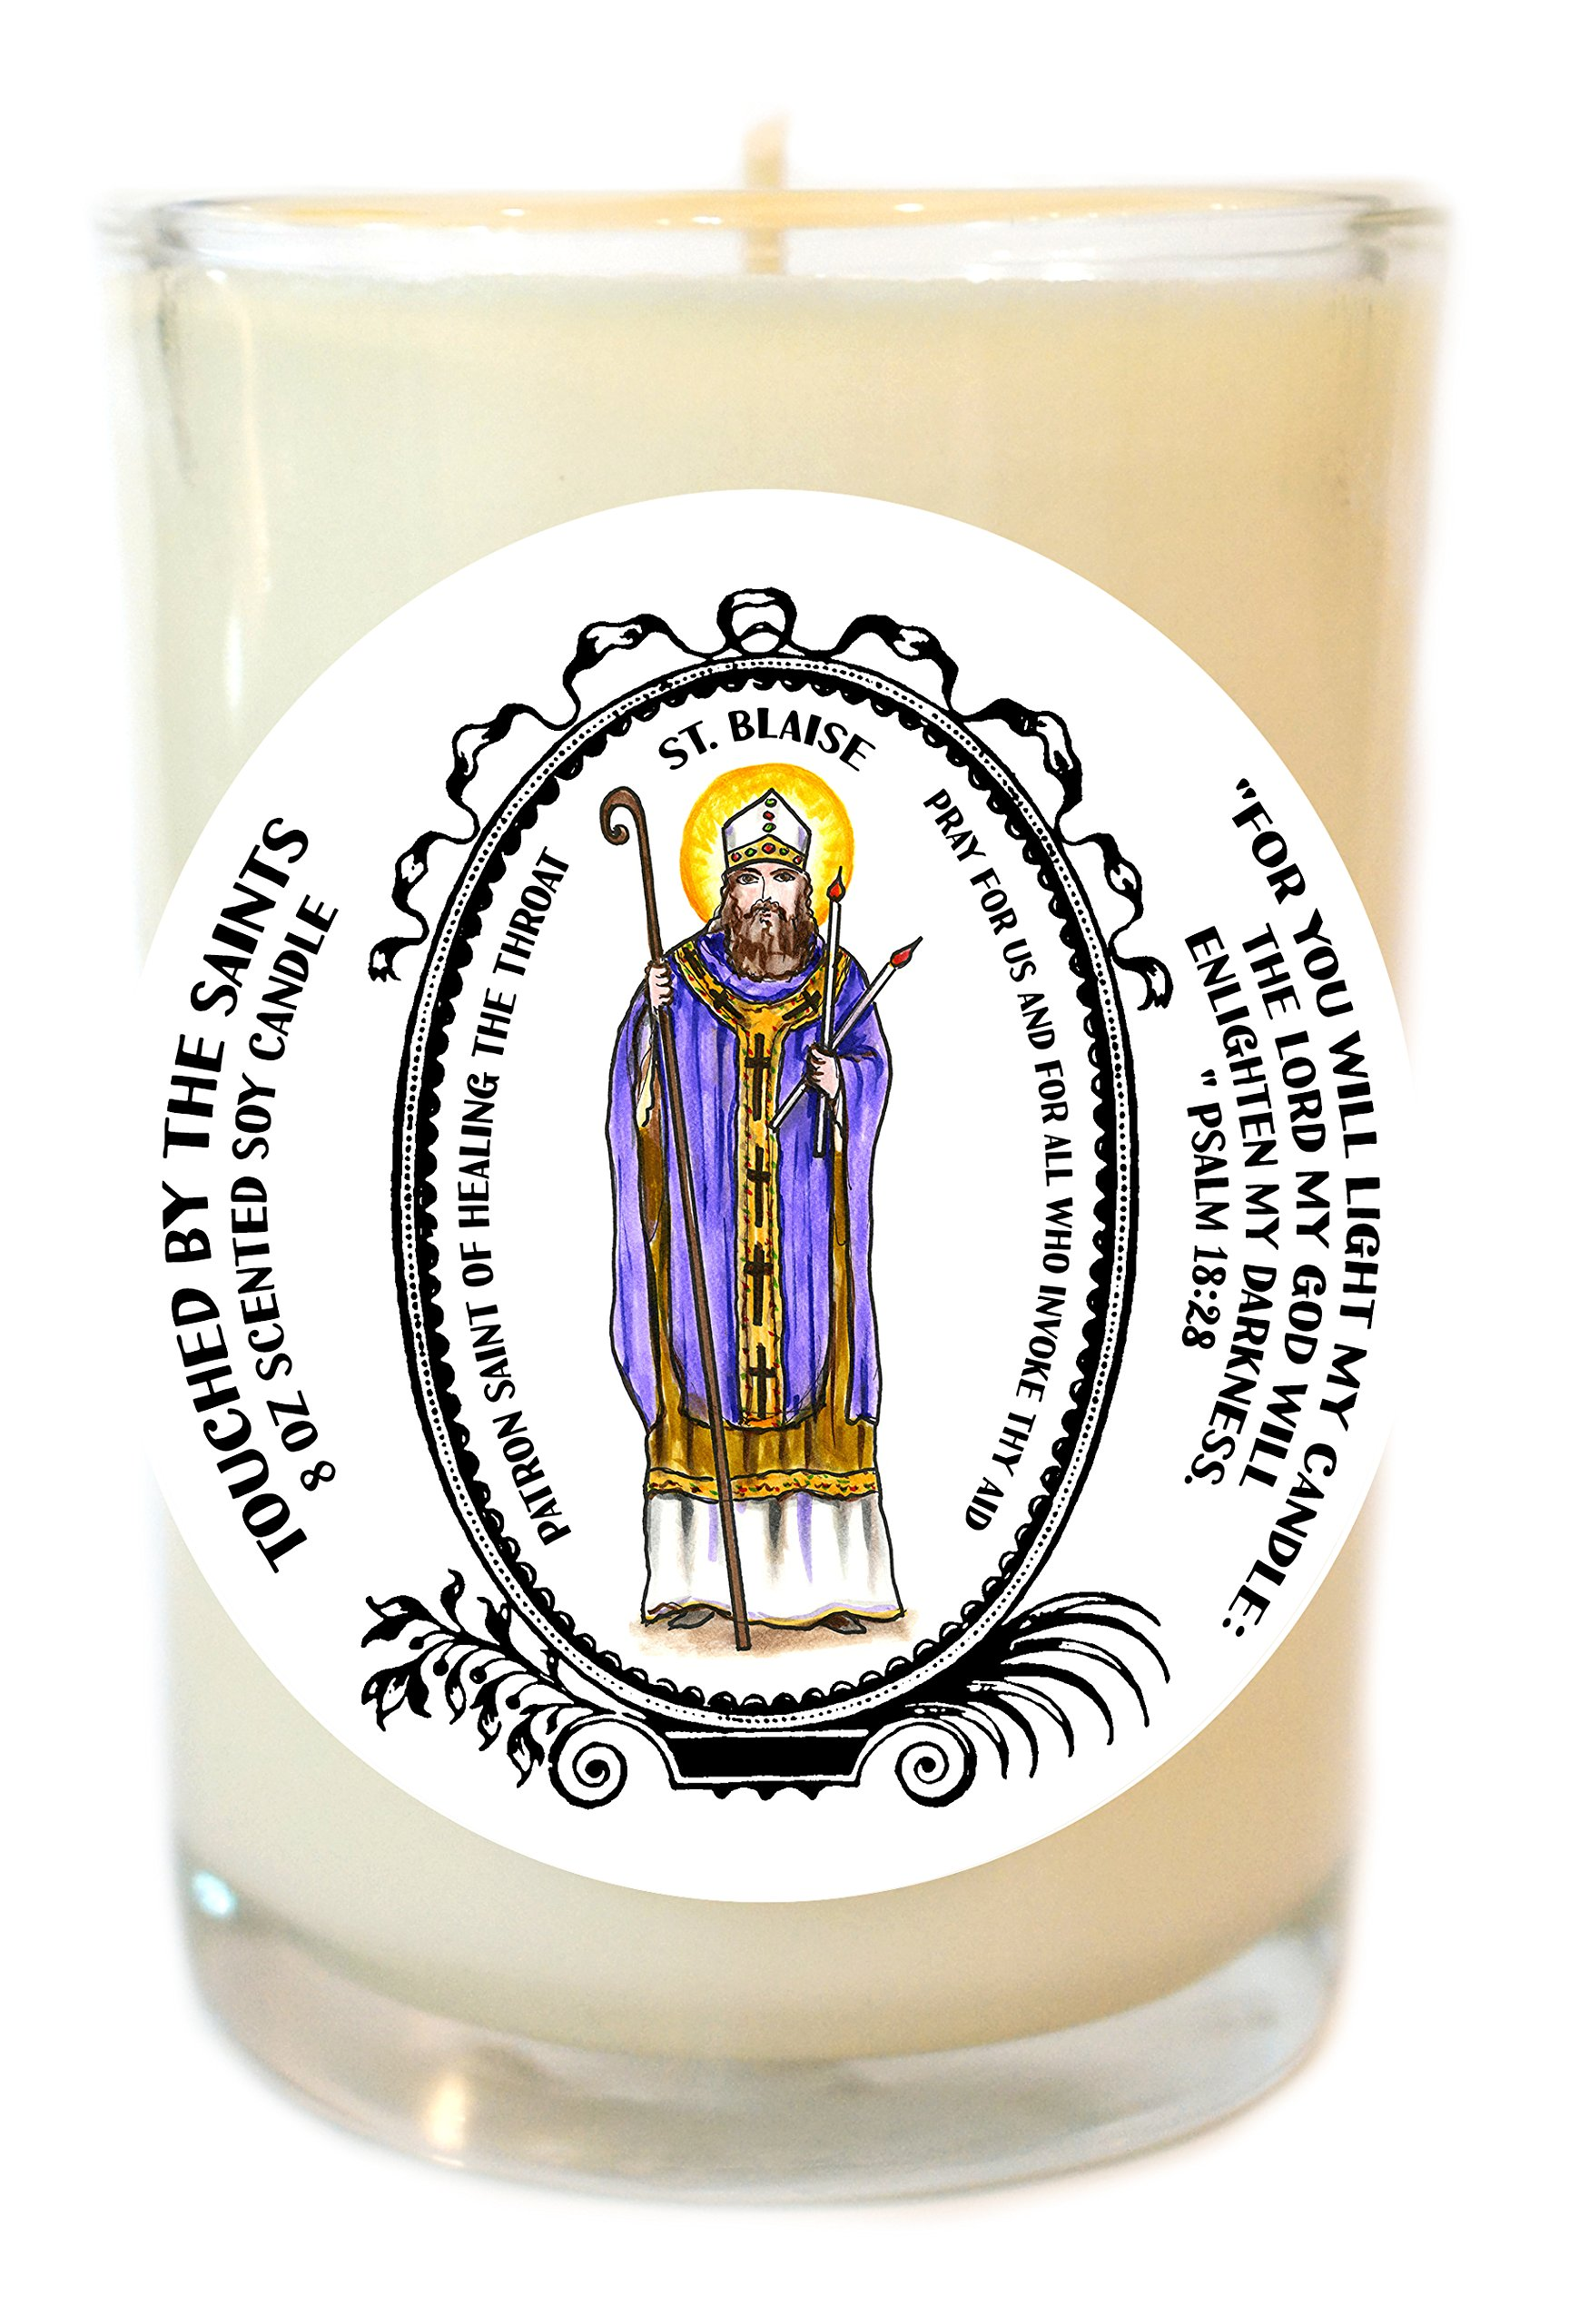 Saint Blaise Patron of Healing the Throat 8 Oz Scented Soy Glass Prayer Candle